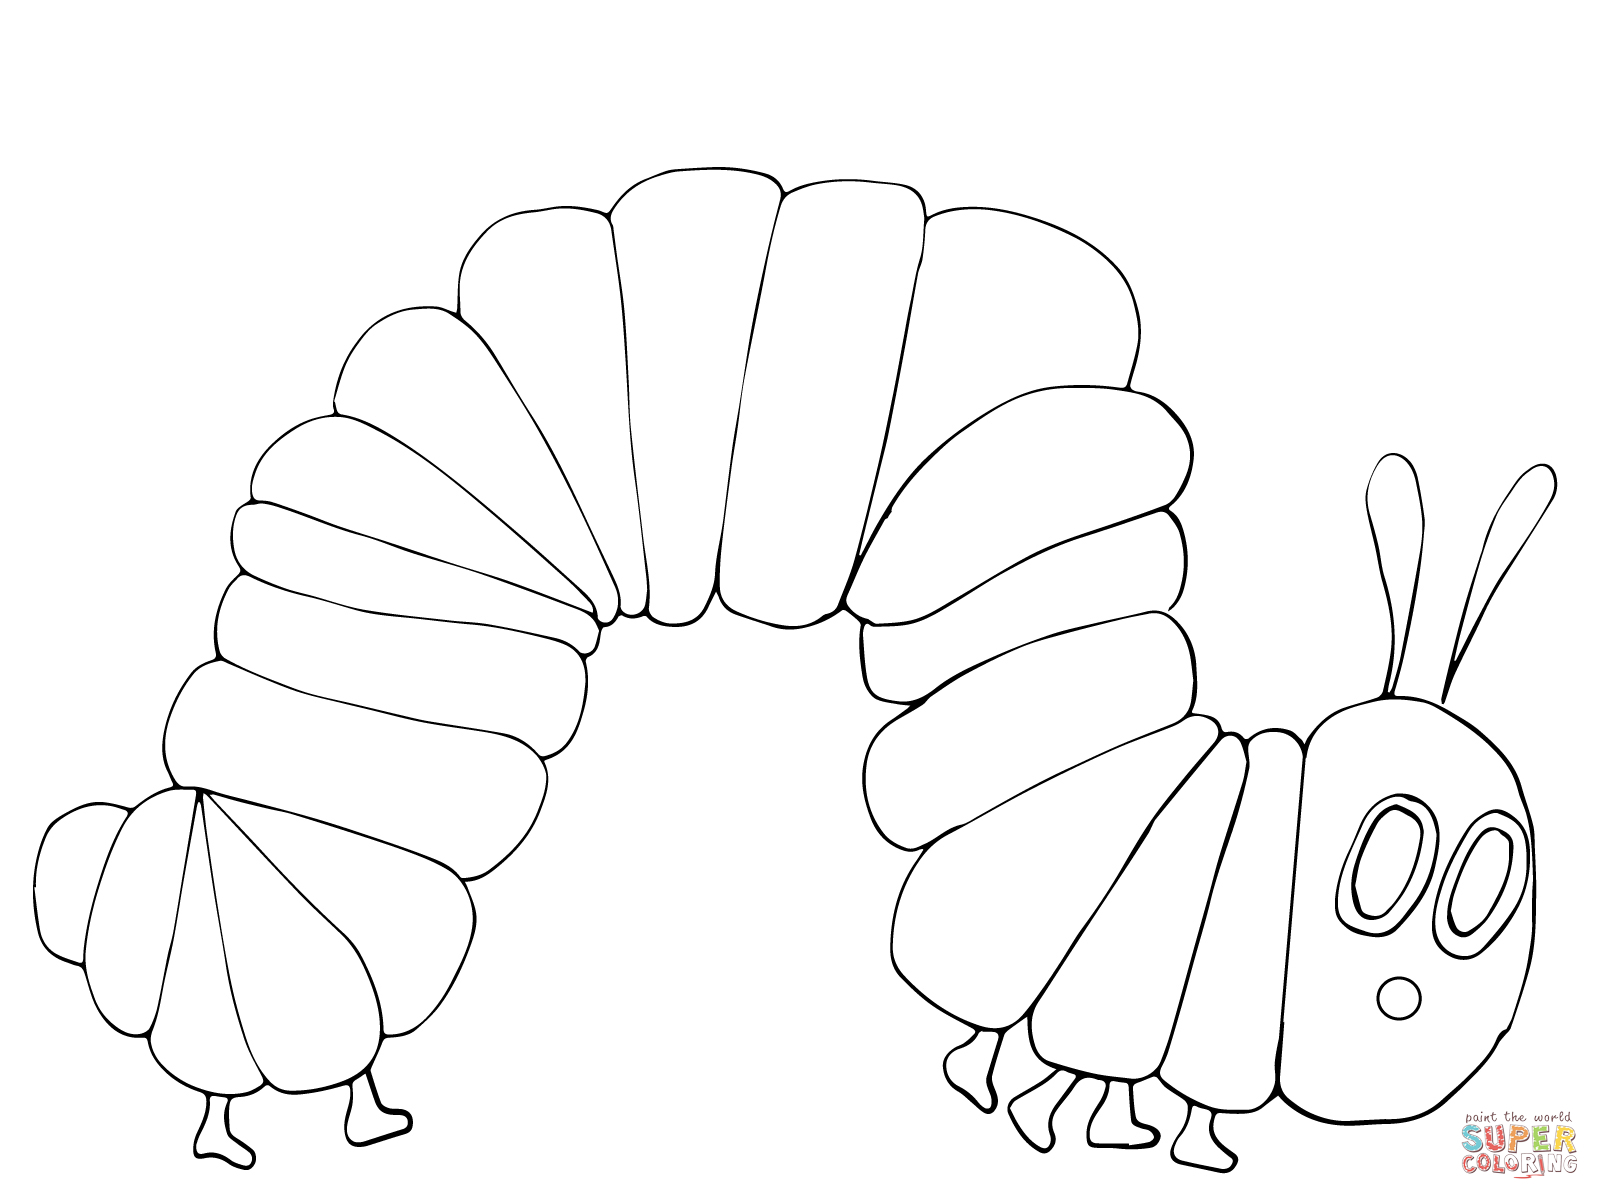 Hungry Caterpillar Coloring Pages Coloring Pages Splendi The Very Hungry Caterpillar Coloring Book